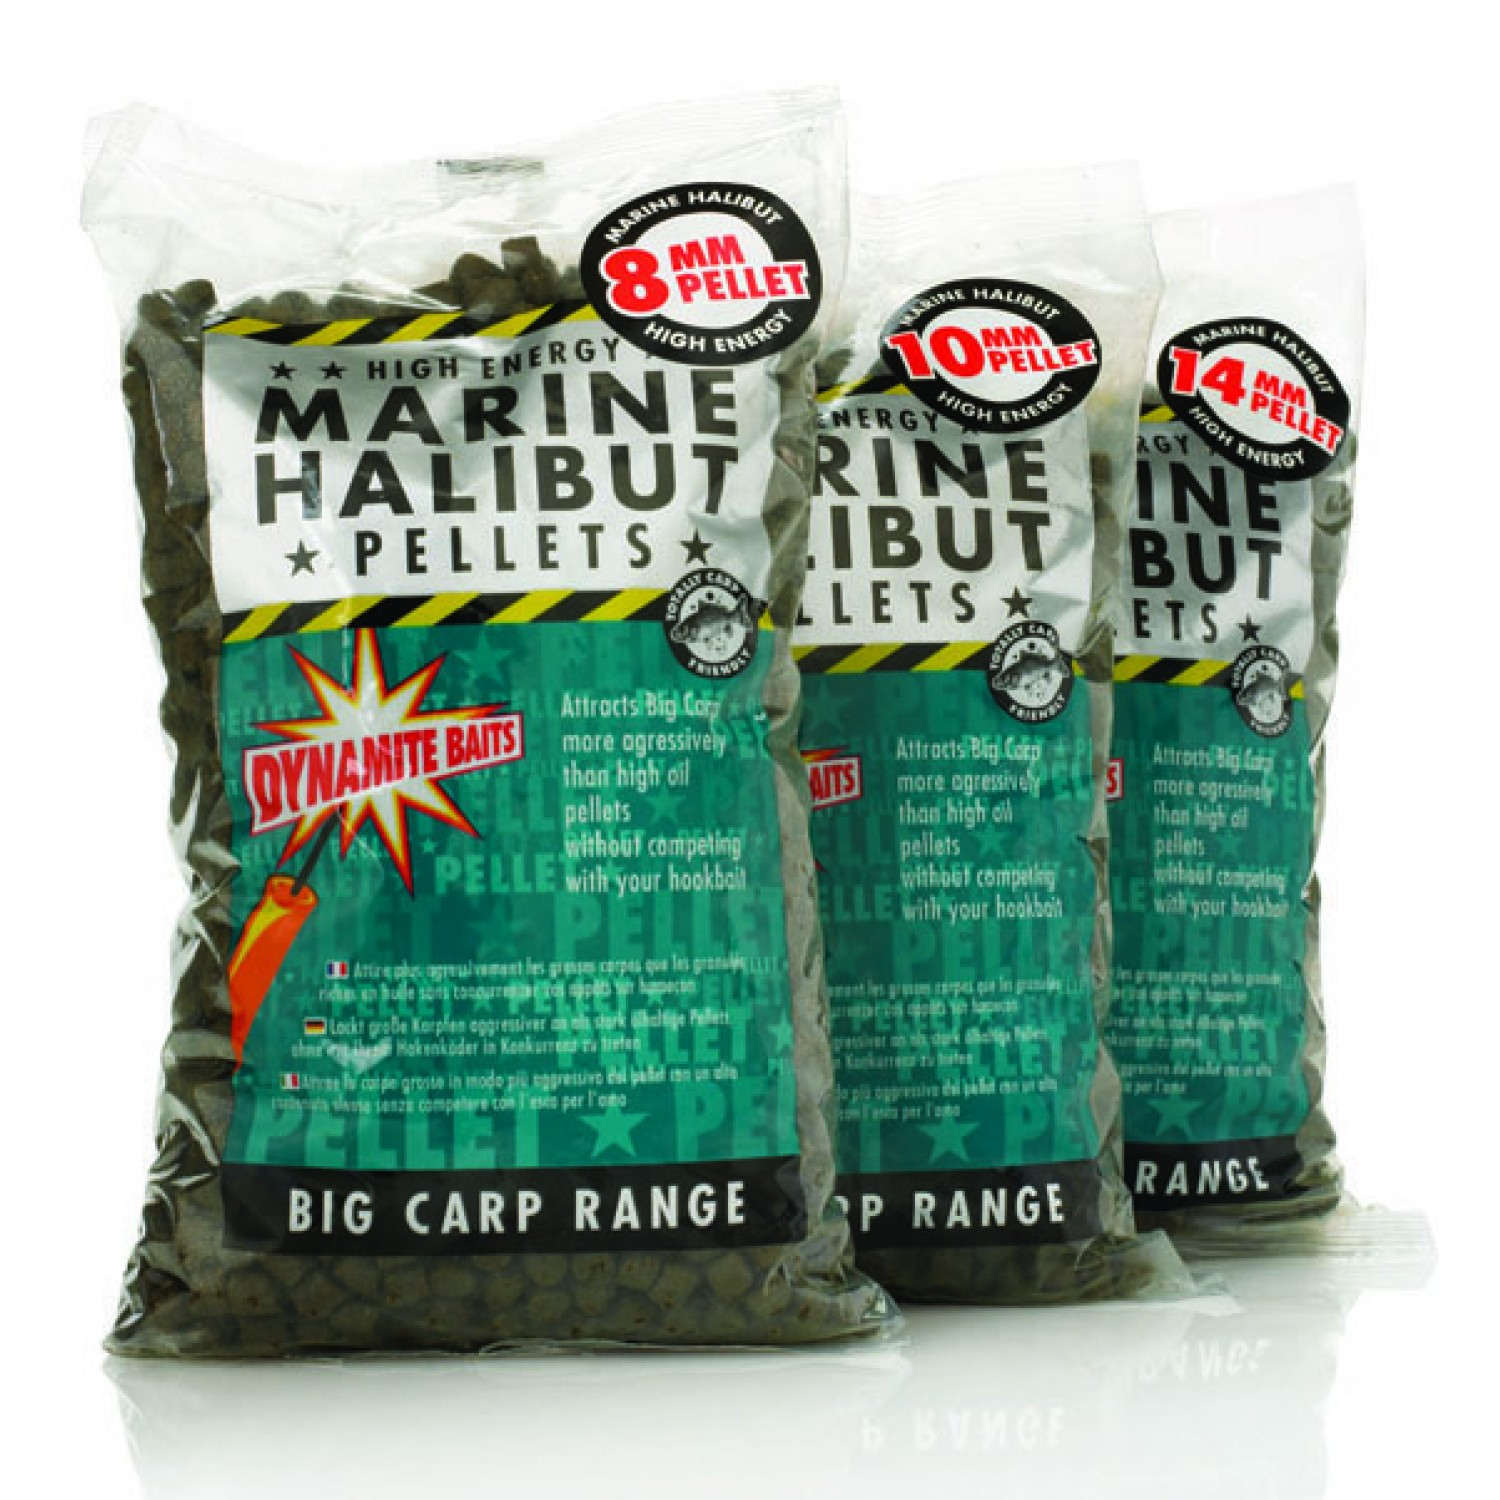 Dynamite Baits Pellets 900g, Marine Halibut 3-21mm